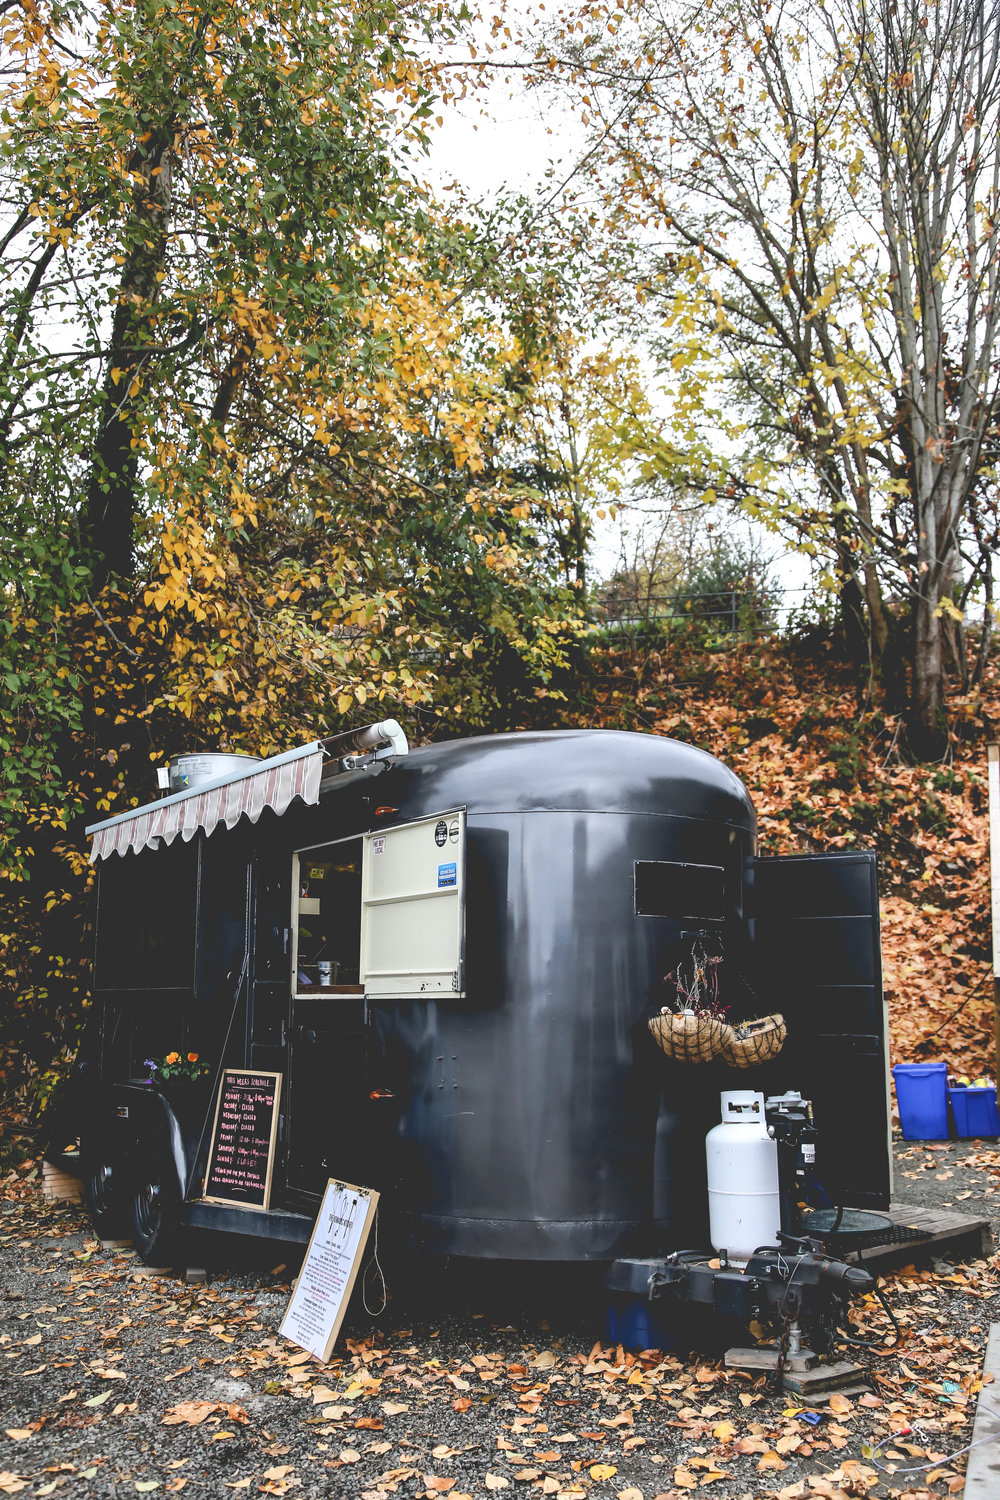 THE NOMADIC KITCHEN - This cute little spot is located right beside Gibsons Tapworks.Farmed. Foraged. Found. BC born & bred food truck serves amazing bites...including to die for tacos.